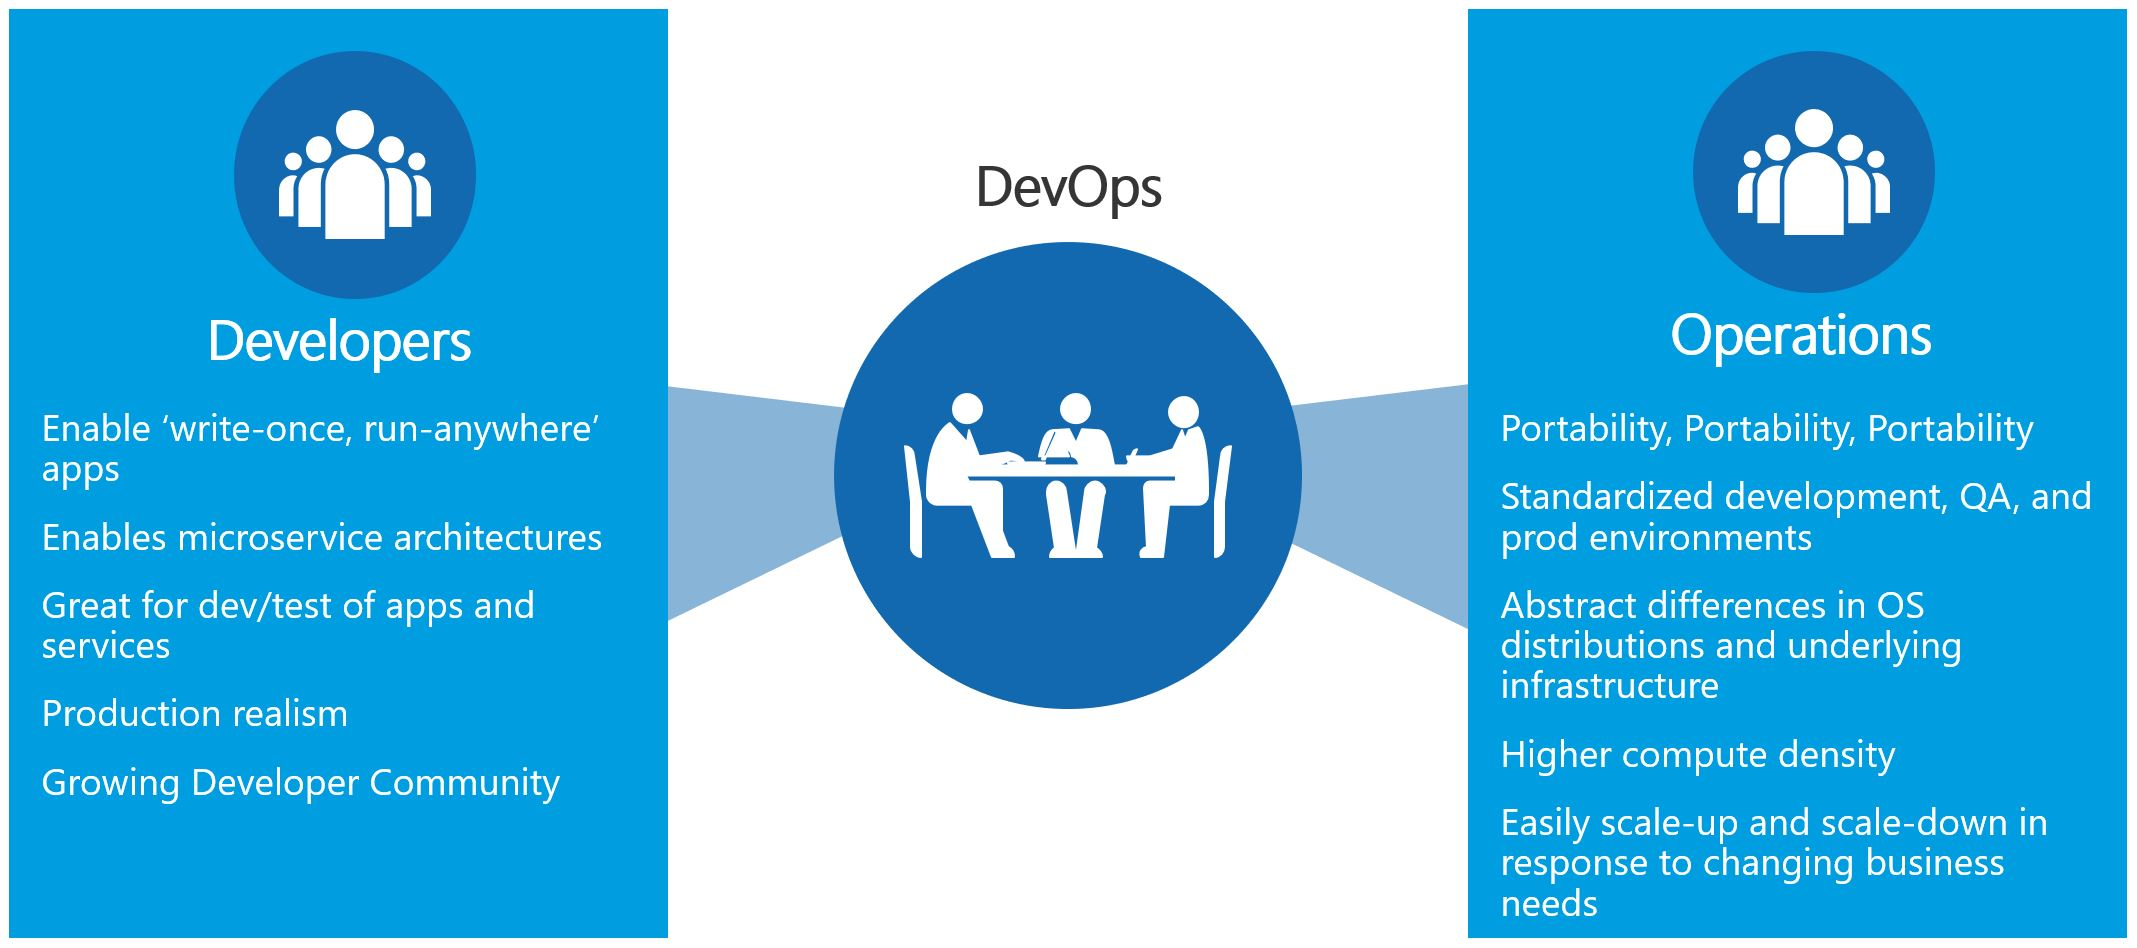 Image of why you should use DevOps, also explained below.